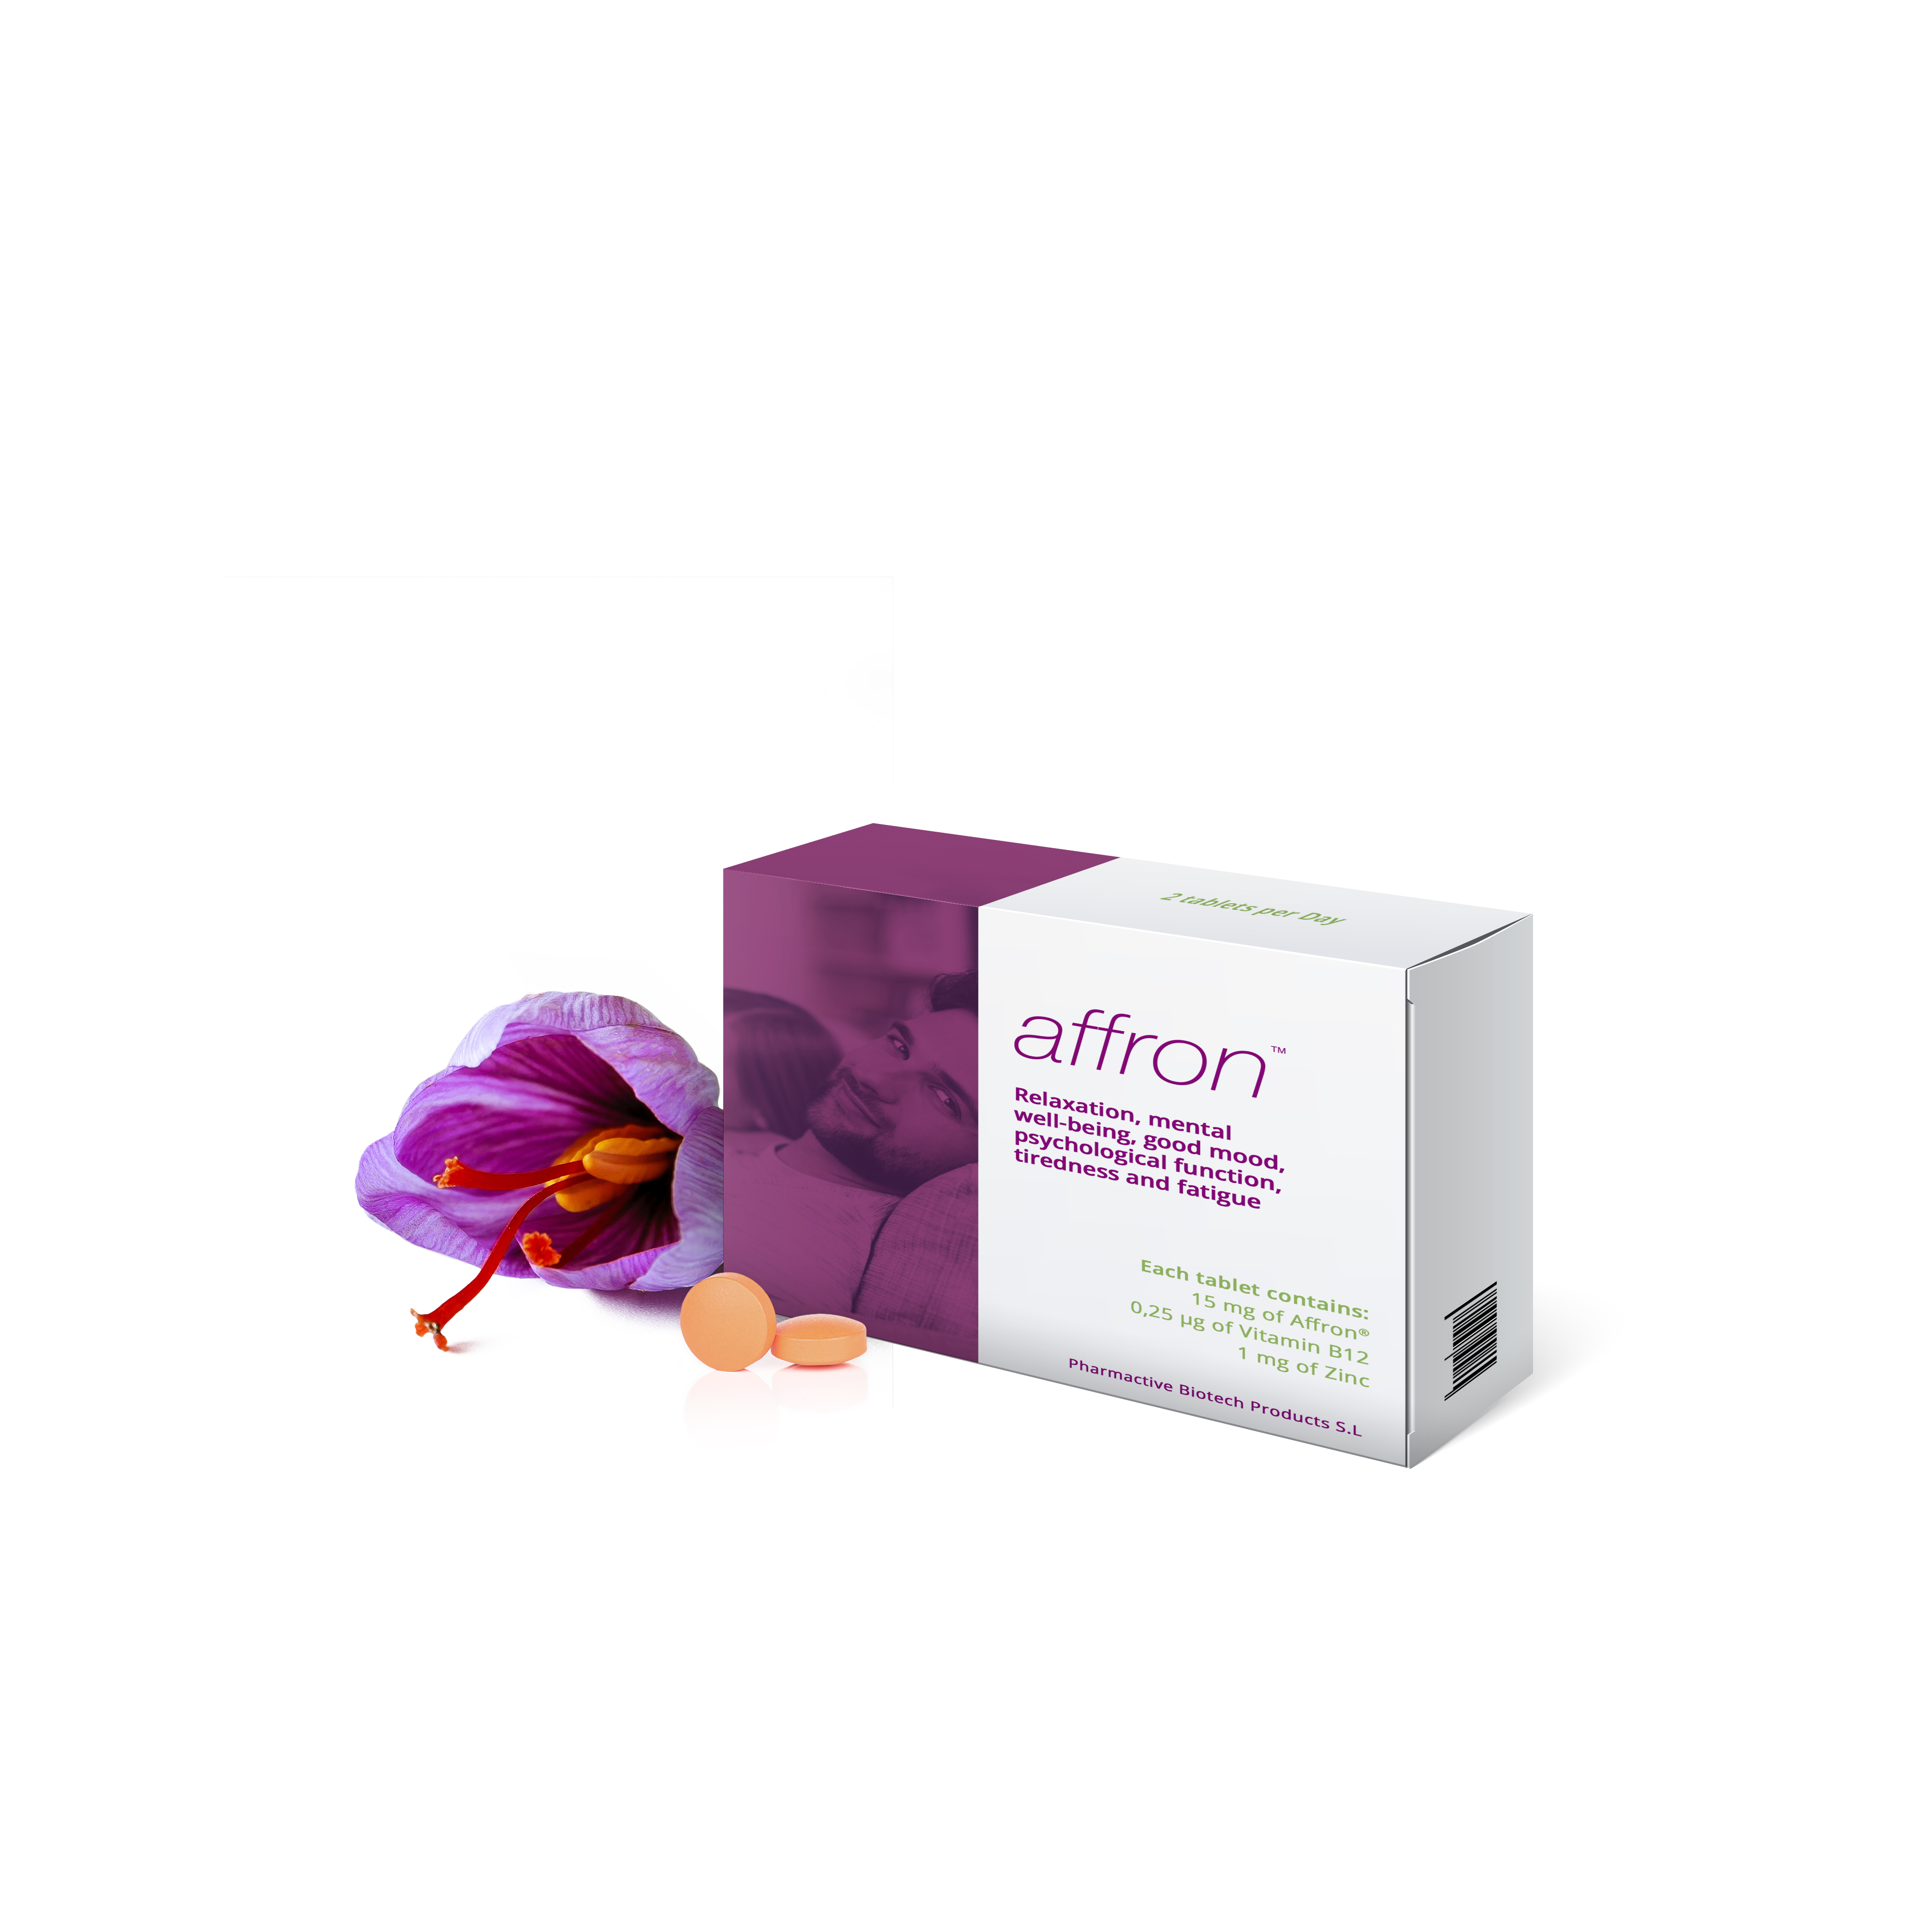 affron®.- ADD-ON TO ANTIDEPRESSANTS AND IMPROVES MOOD AND REDUCE STRESS & ANXIETY IN HEALTHY ADULTS